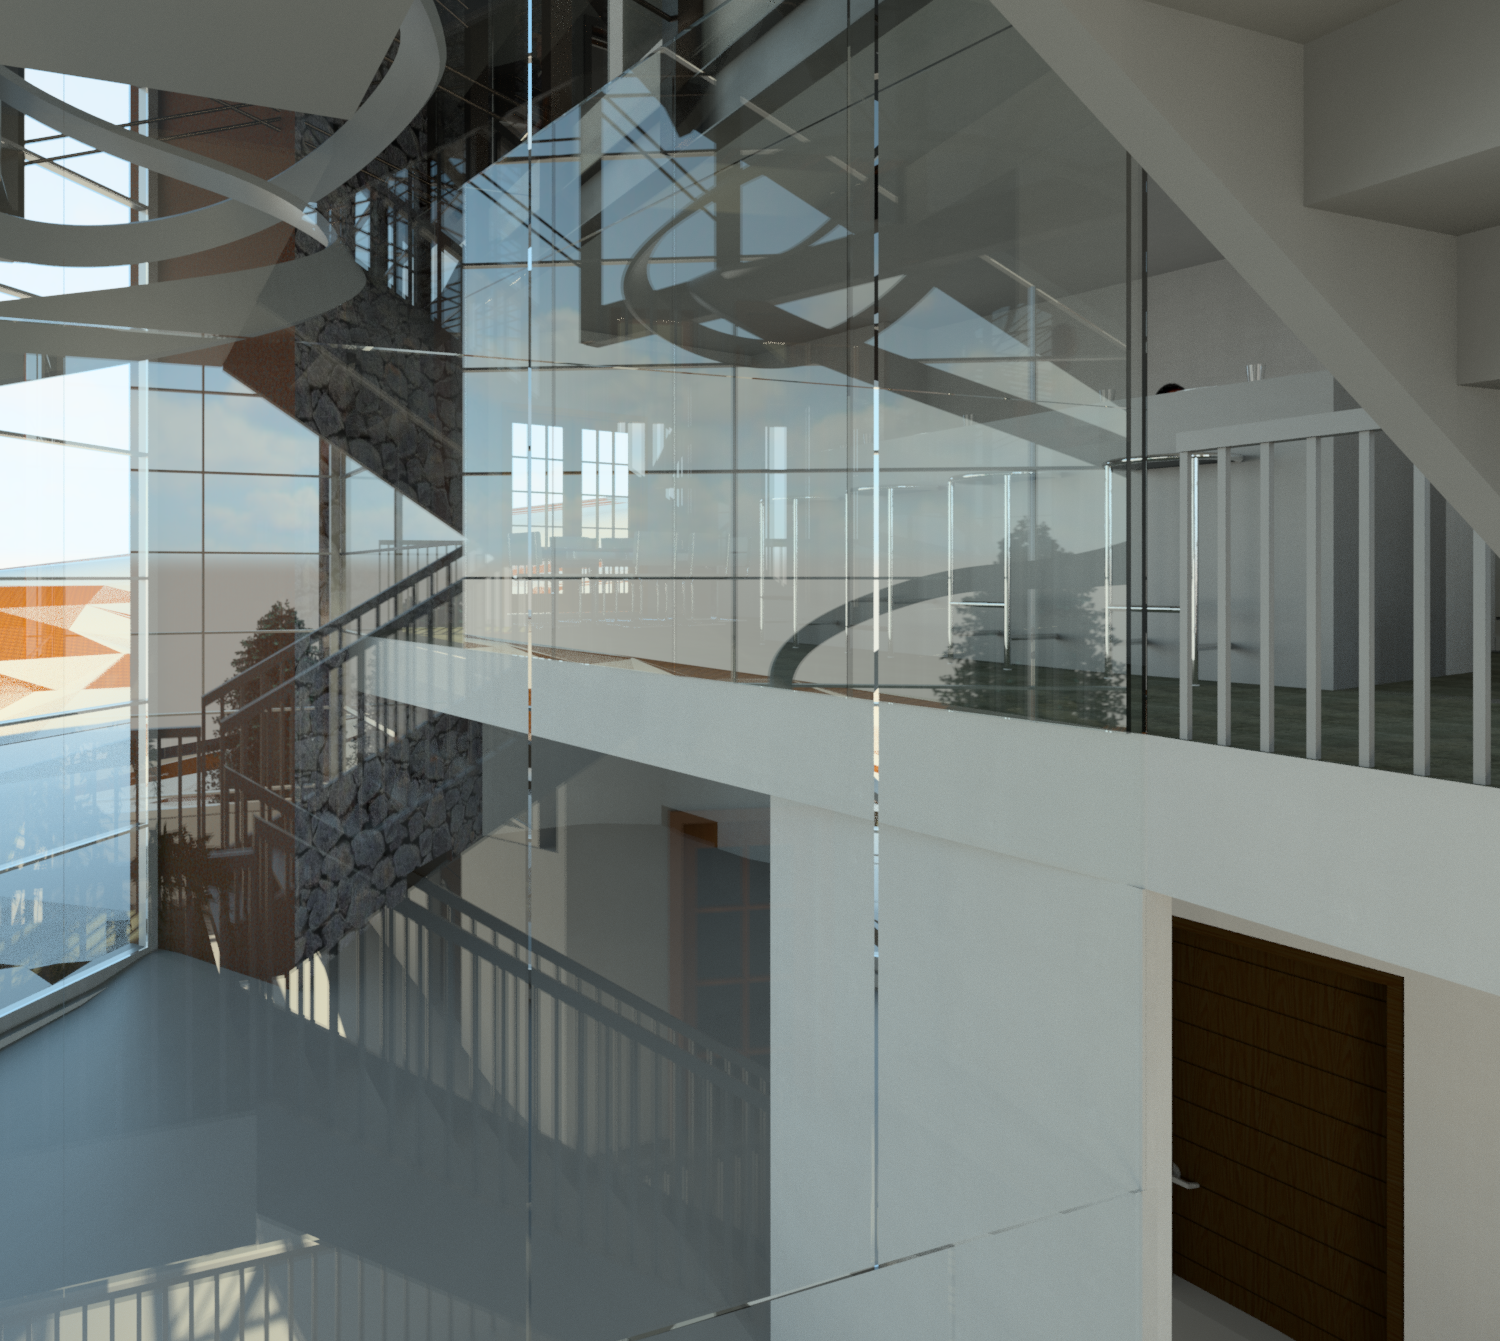 20150609_SULLIVAN_IHRKE_SD_BUILDING3.rvt_2015-Sep-02_11-37-46PM-000_INTERIOR-FROM_LIVING-TOWARD_LAGOON.png